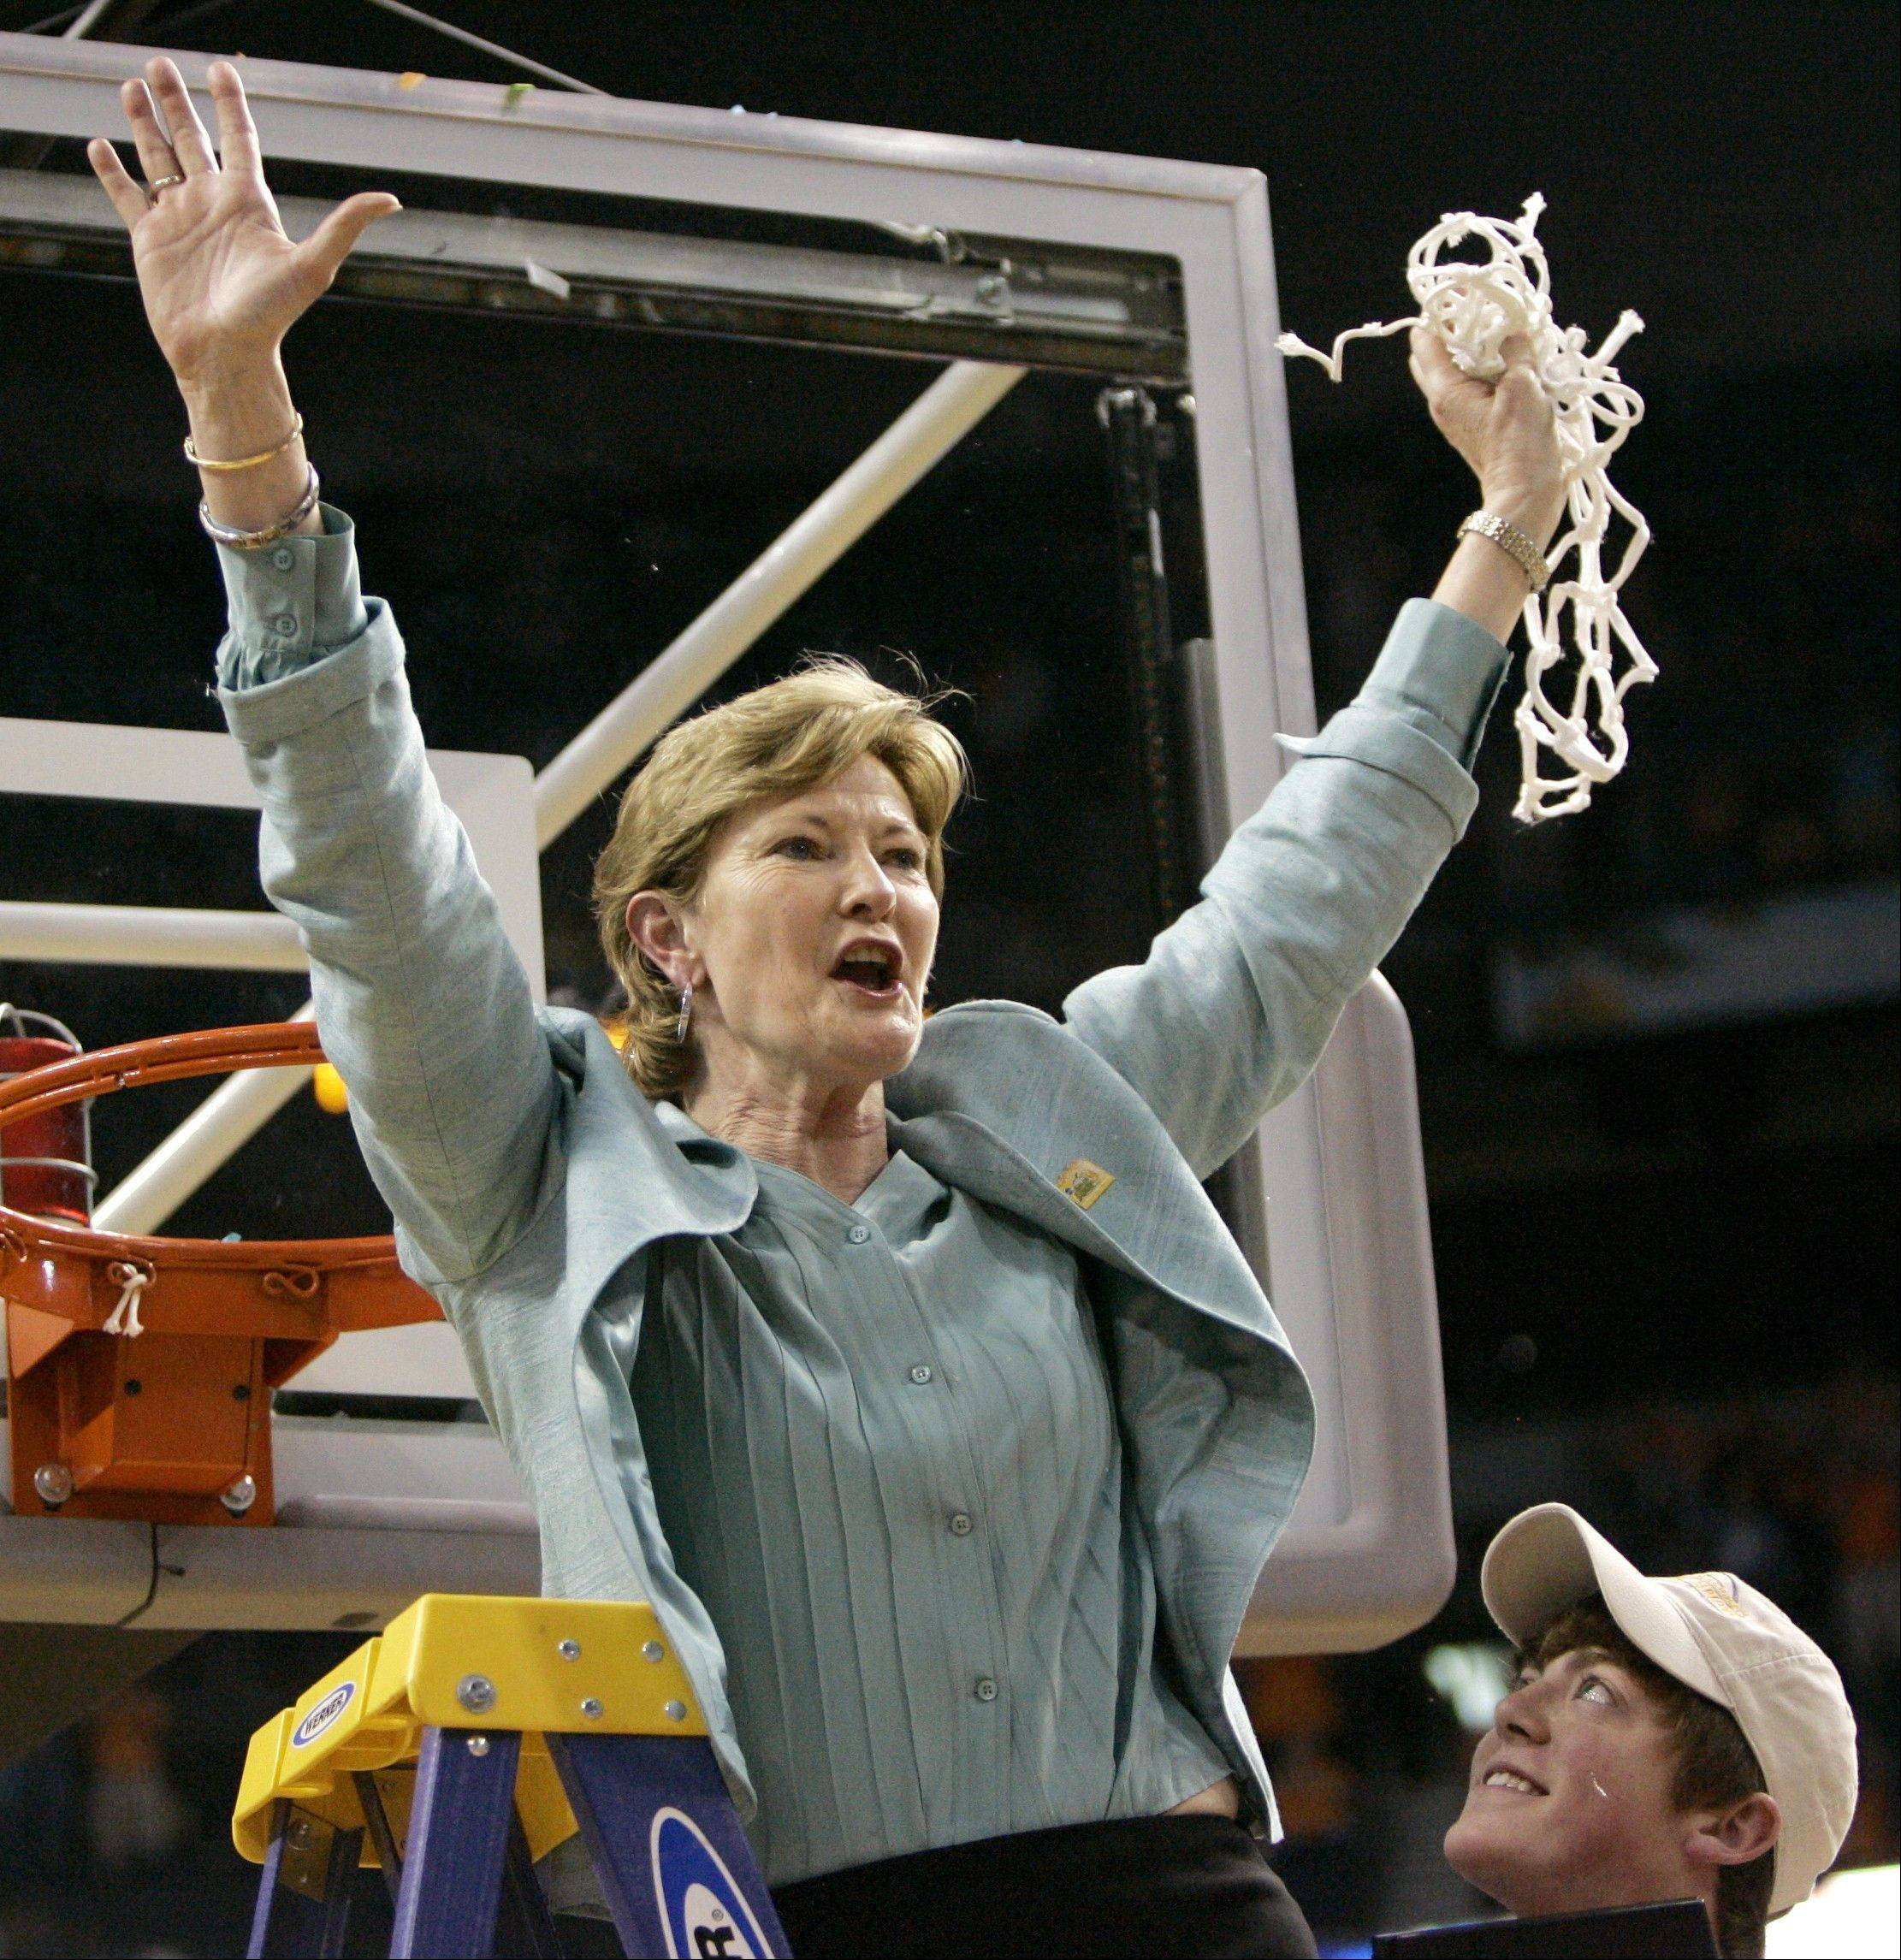 Legendary Tennessee coach Pat Summitt has enjoyed considerable success in her career. She recently announced that she has been diagnosed with early onset Alzheimer's-type dementia.